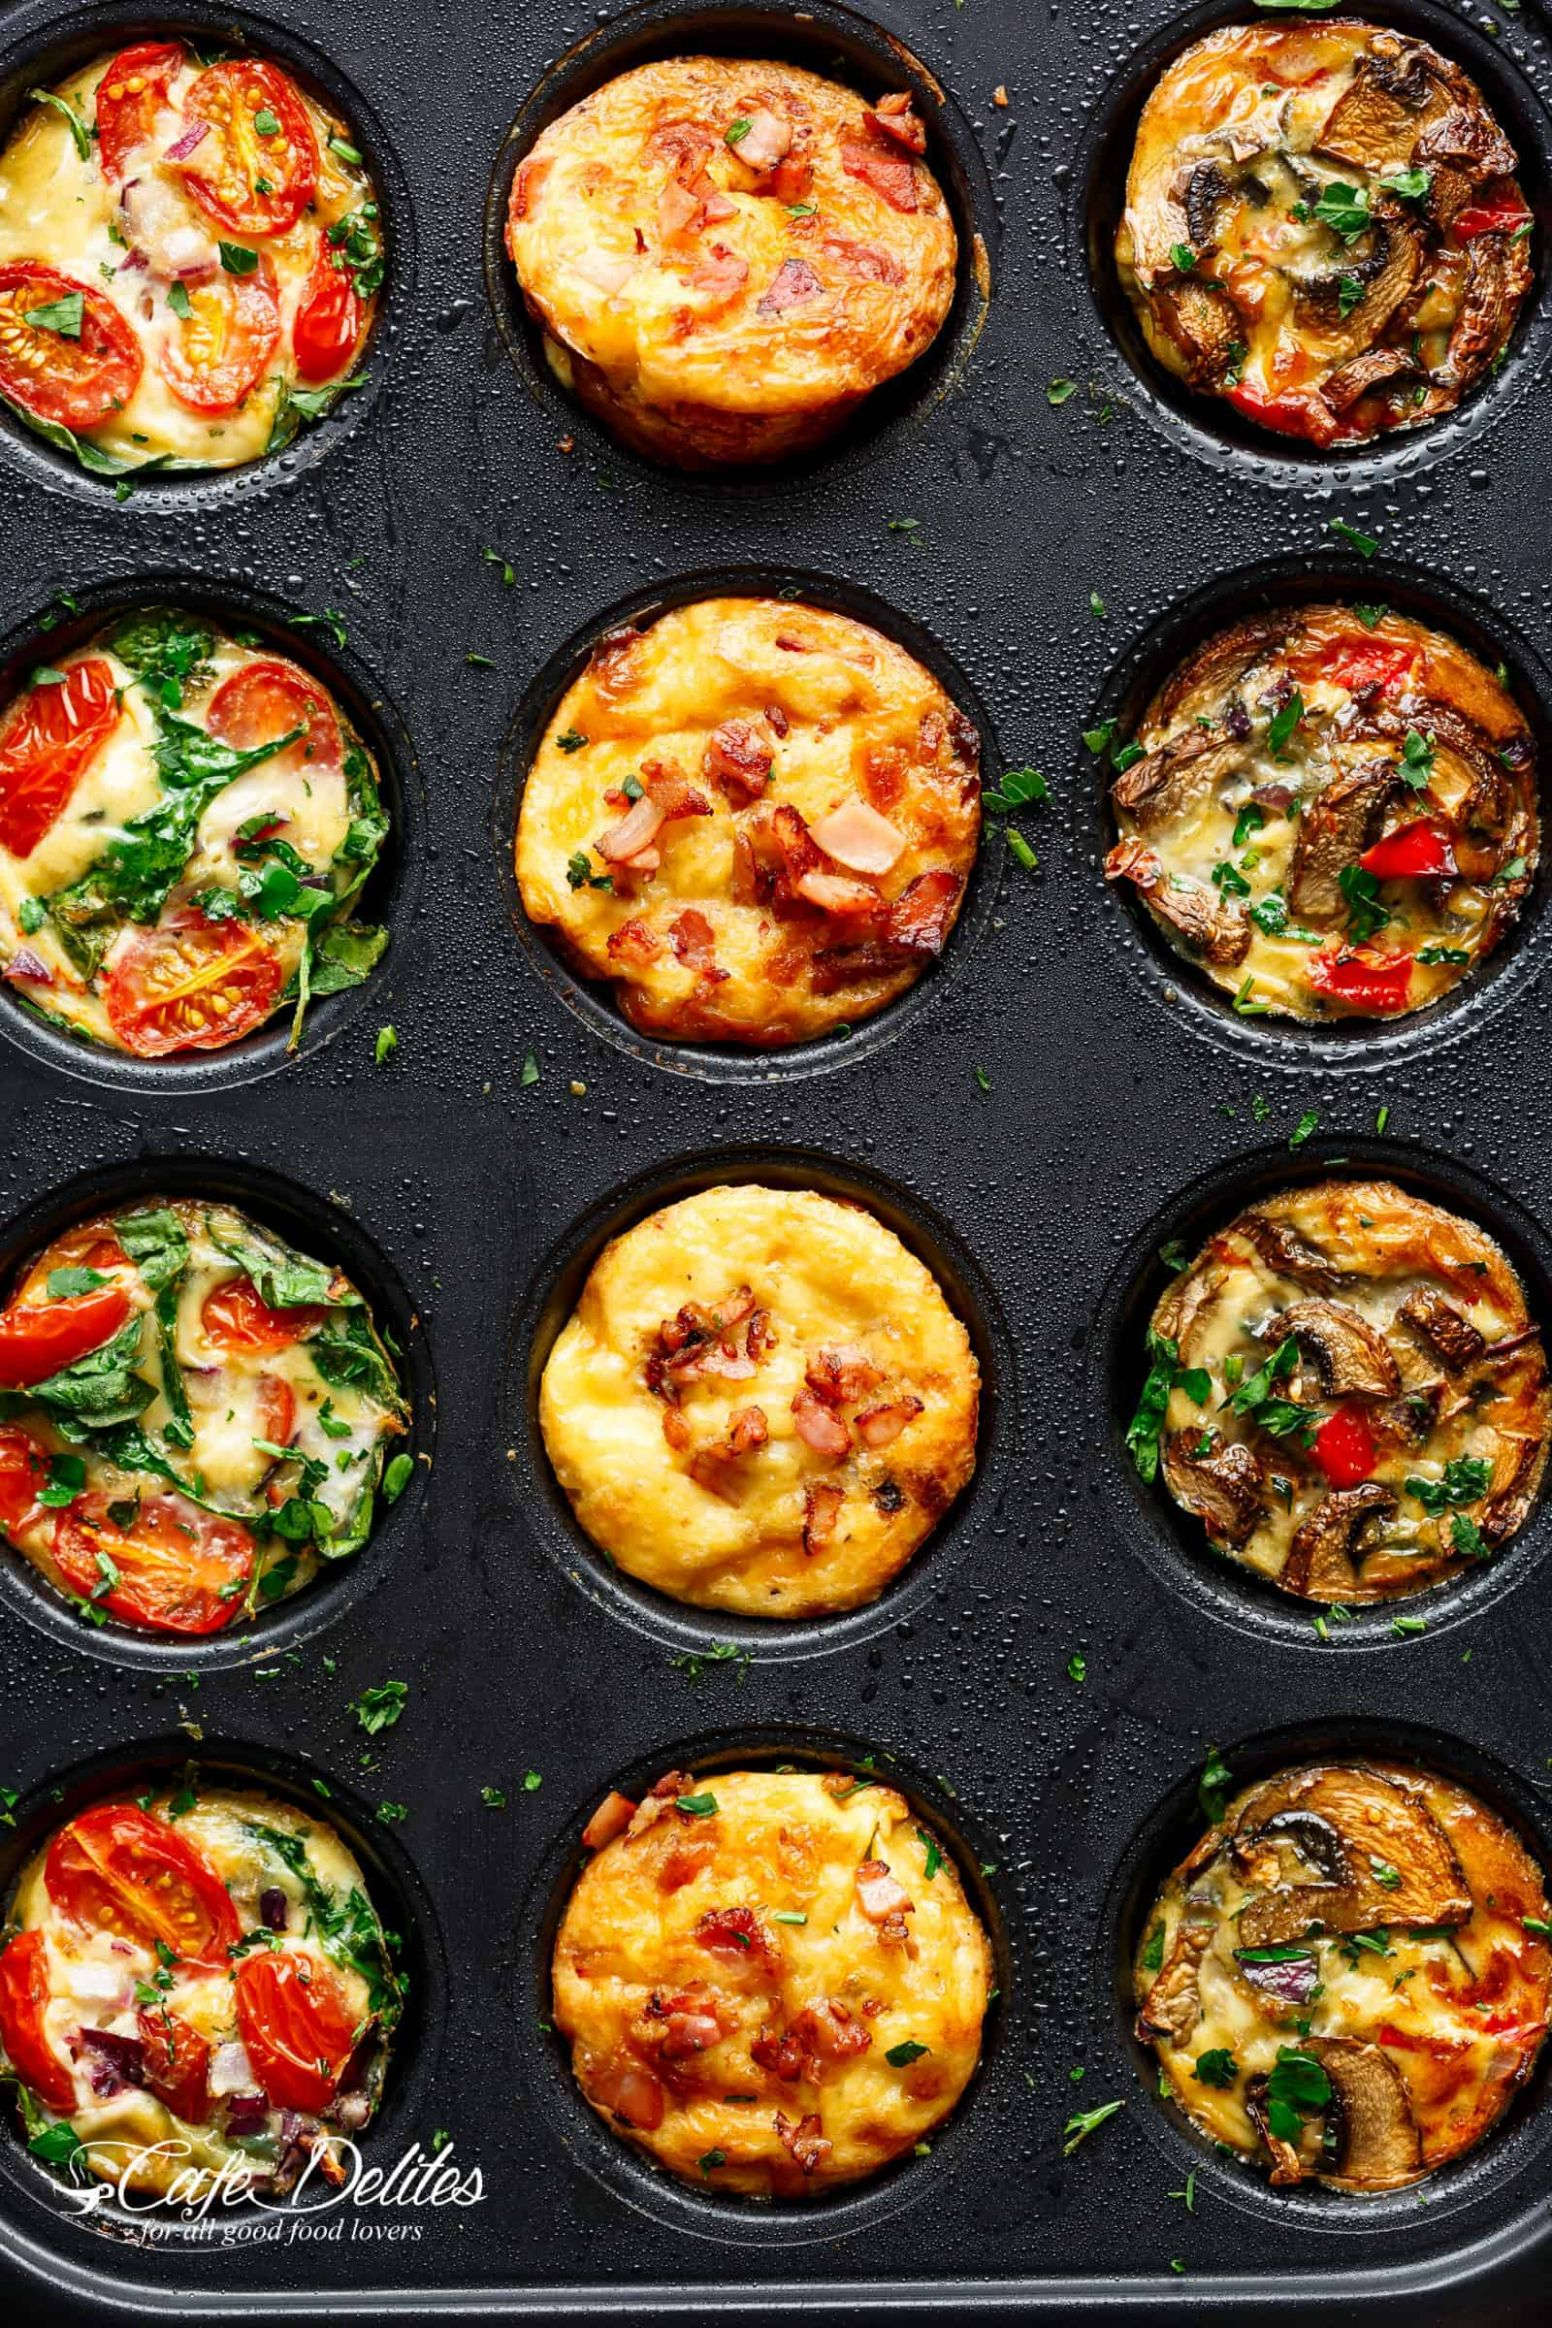 Breakfast Egg Muffins 12 Ways (Meal Prep) - Cafe Delites - Recipes Egg Muffin Cups